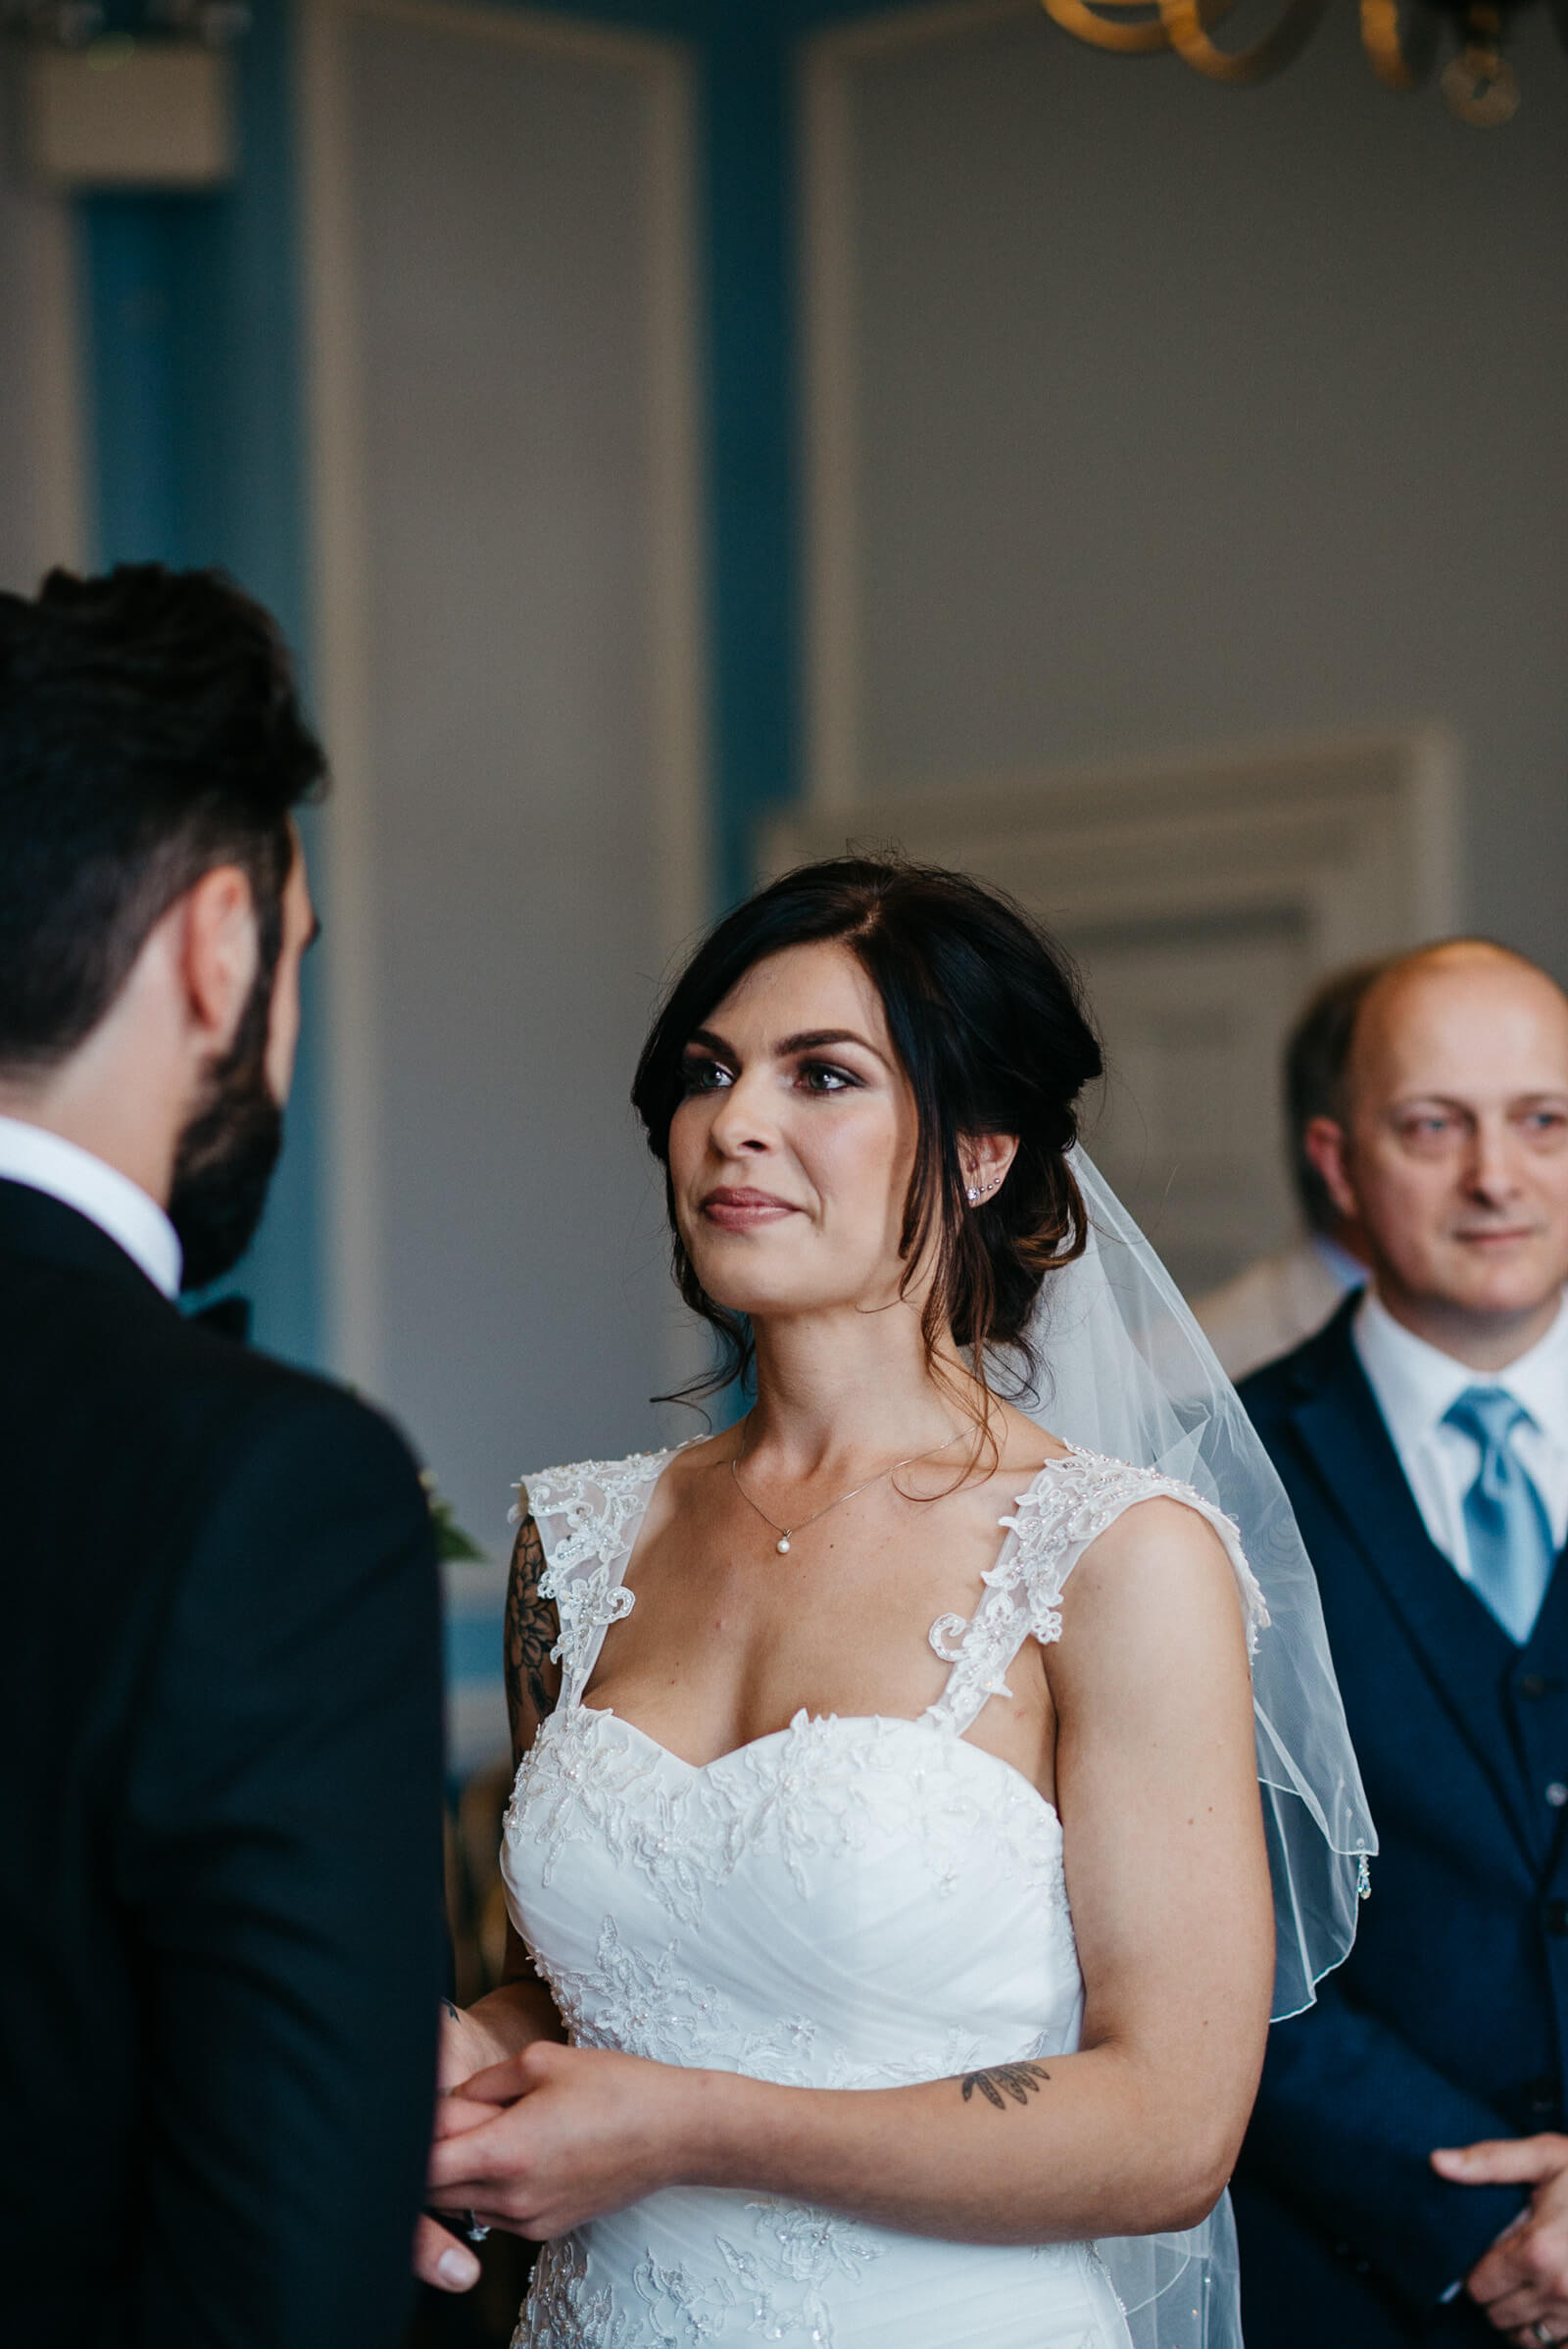 bride exchanges wedding vows with groom during intimate and relaxed city hall ceremony